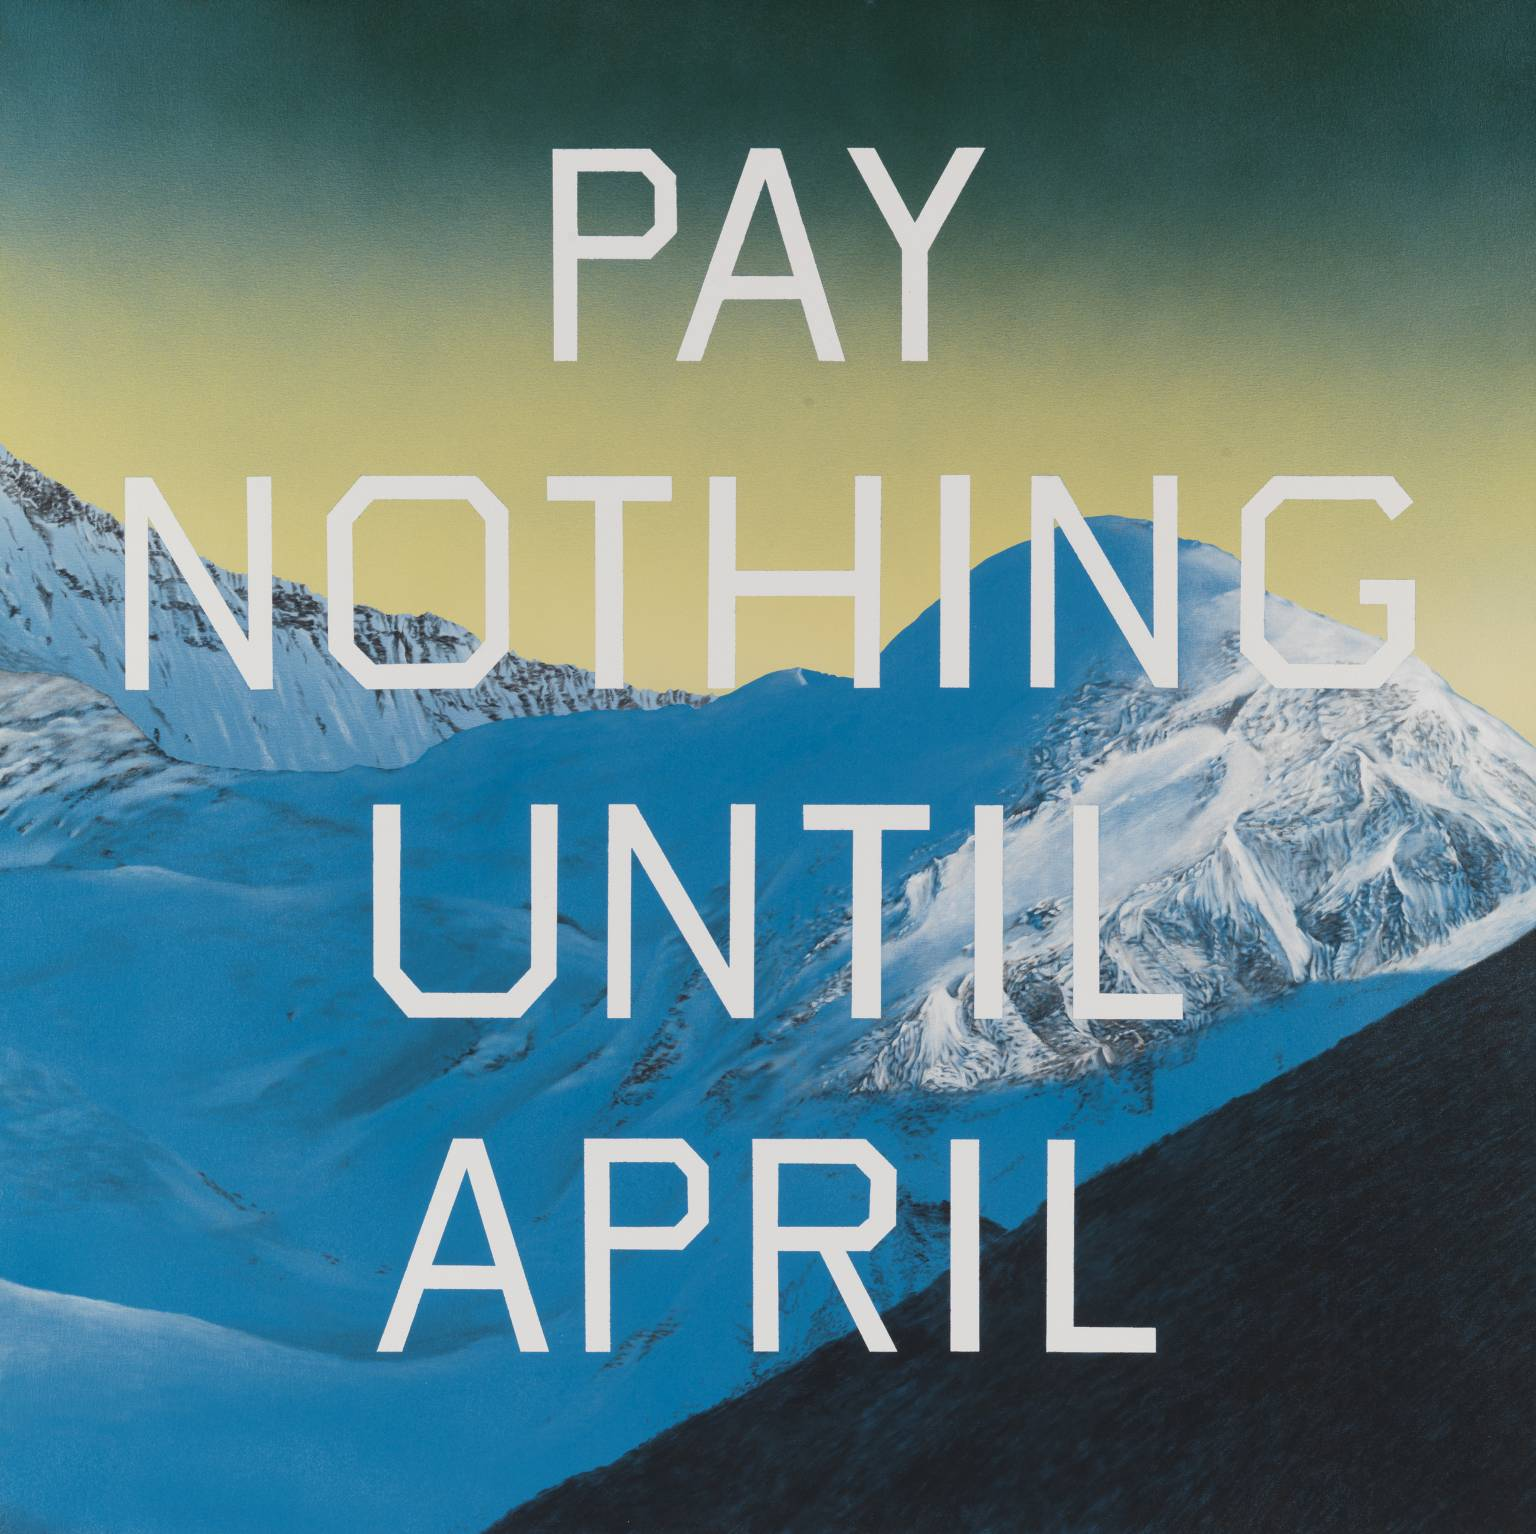 "Ed Ruscha,  Pay Nothing Until April  (2003). Ruscha celebrated his birthday this week, and the Tate Modern (where this holiday-themed work is housed) describes the painting as expressing ""a cool, detached world-view in keeping with Ruscha's conceptual works such as his photo-book  (Every Building On) The Sunset Strip  1966. Roughly the size of a poster that might be displayed in a shop window, the picture's alpine setting and eye-grabbing lettering call to mind an advertisement for a bargain ski holiday."""